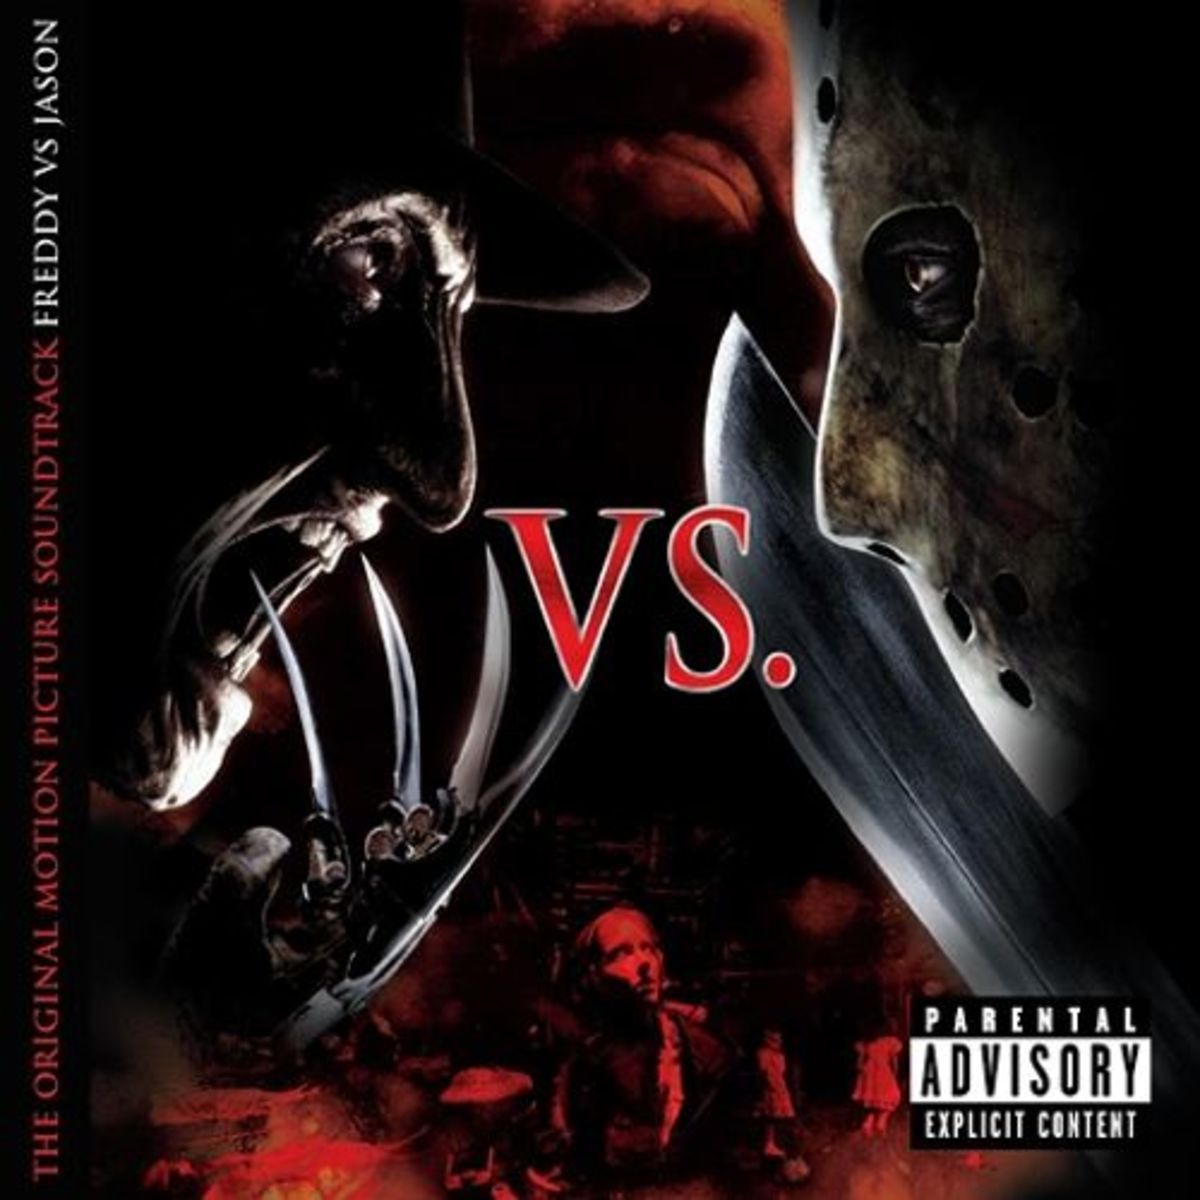 "The ""Freddy Vs. Jason"" soundtrack album featured abrasive nu-metal and hardcore acts like Killswitch Engage, Ill Nino, Hatebreed, and Slipknot."